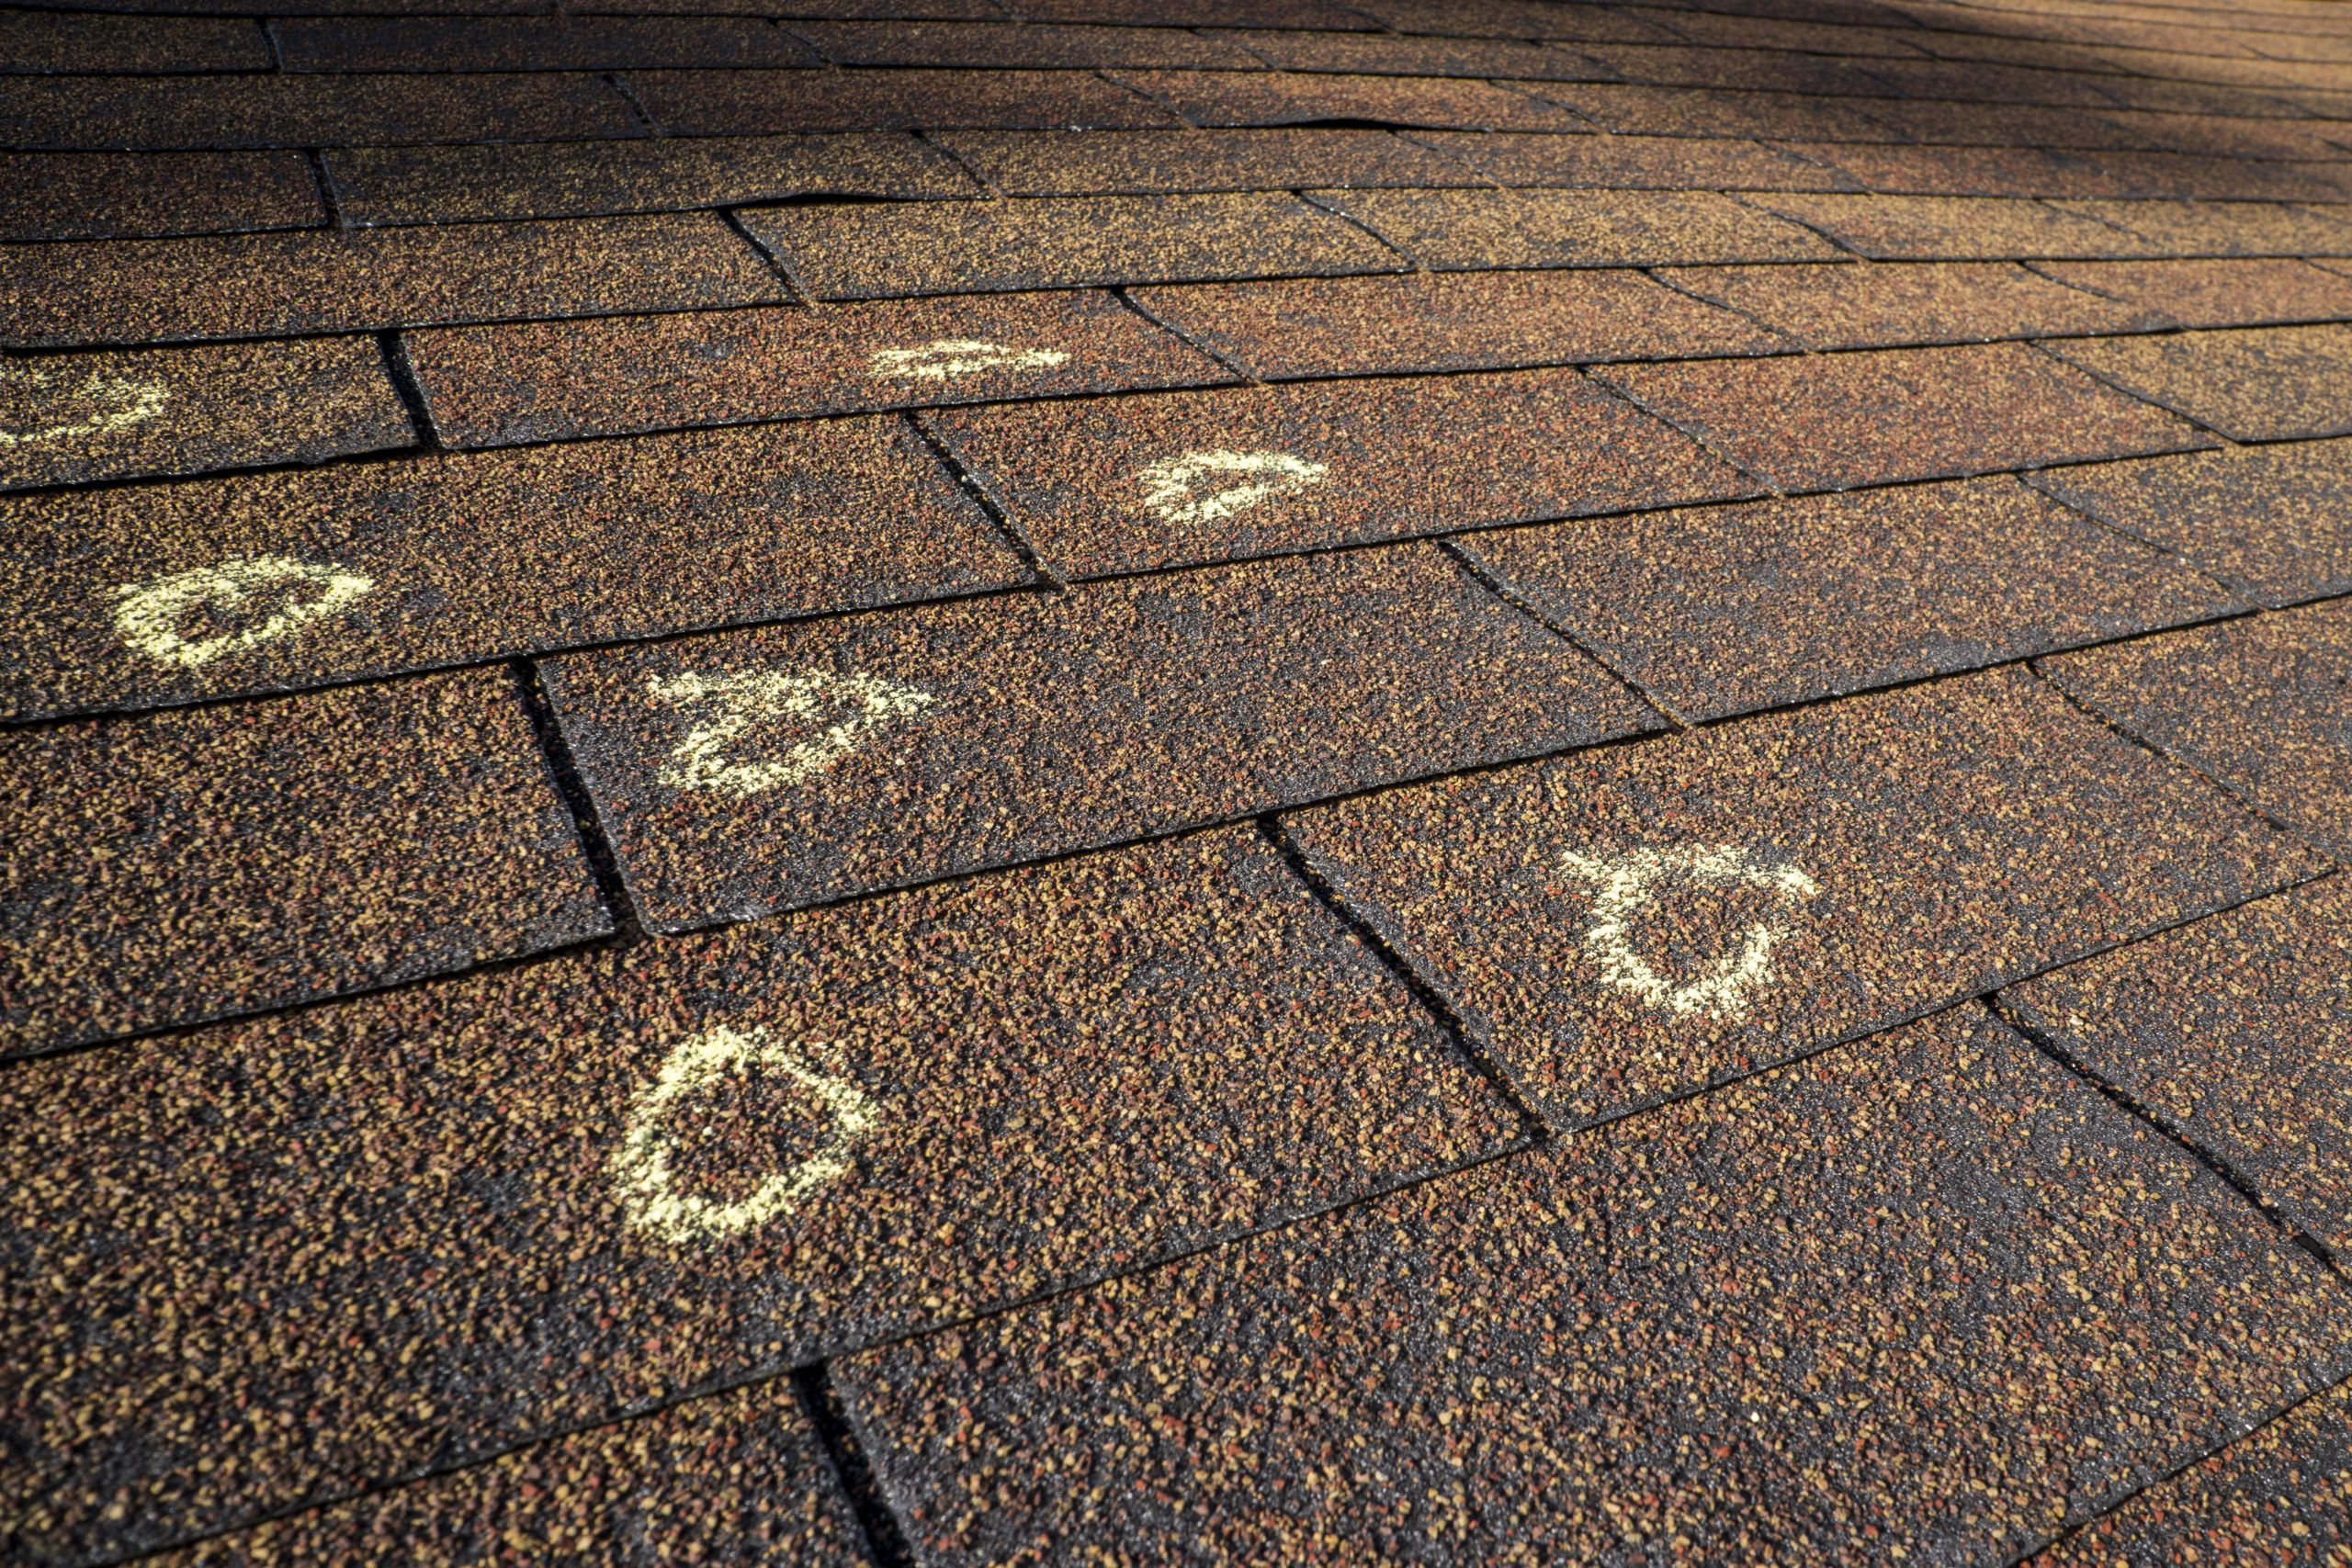 Roof Inspection - Hail Damage